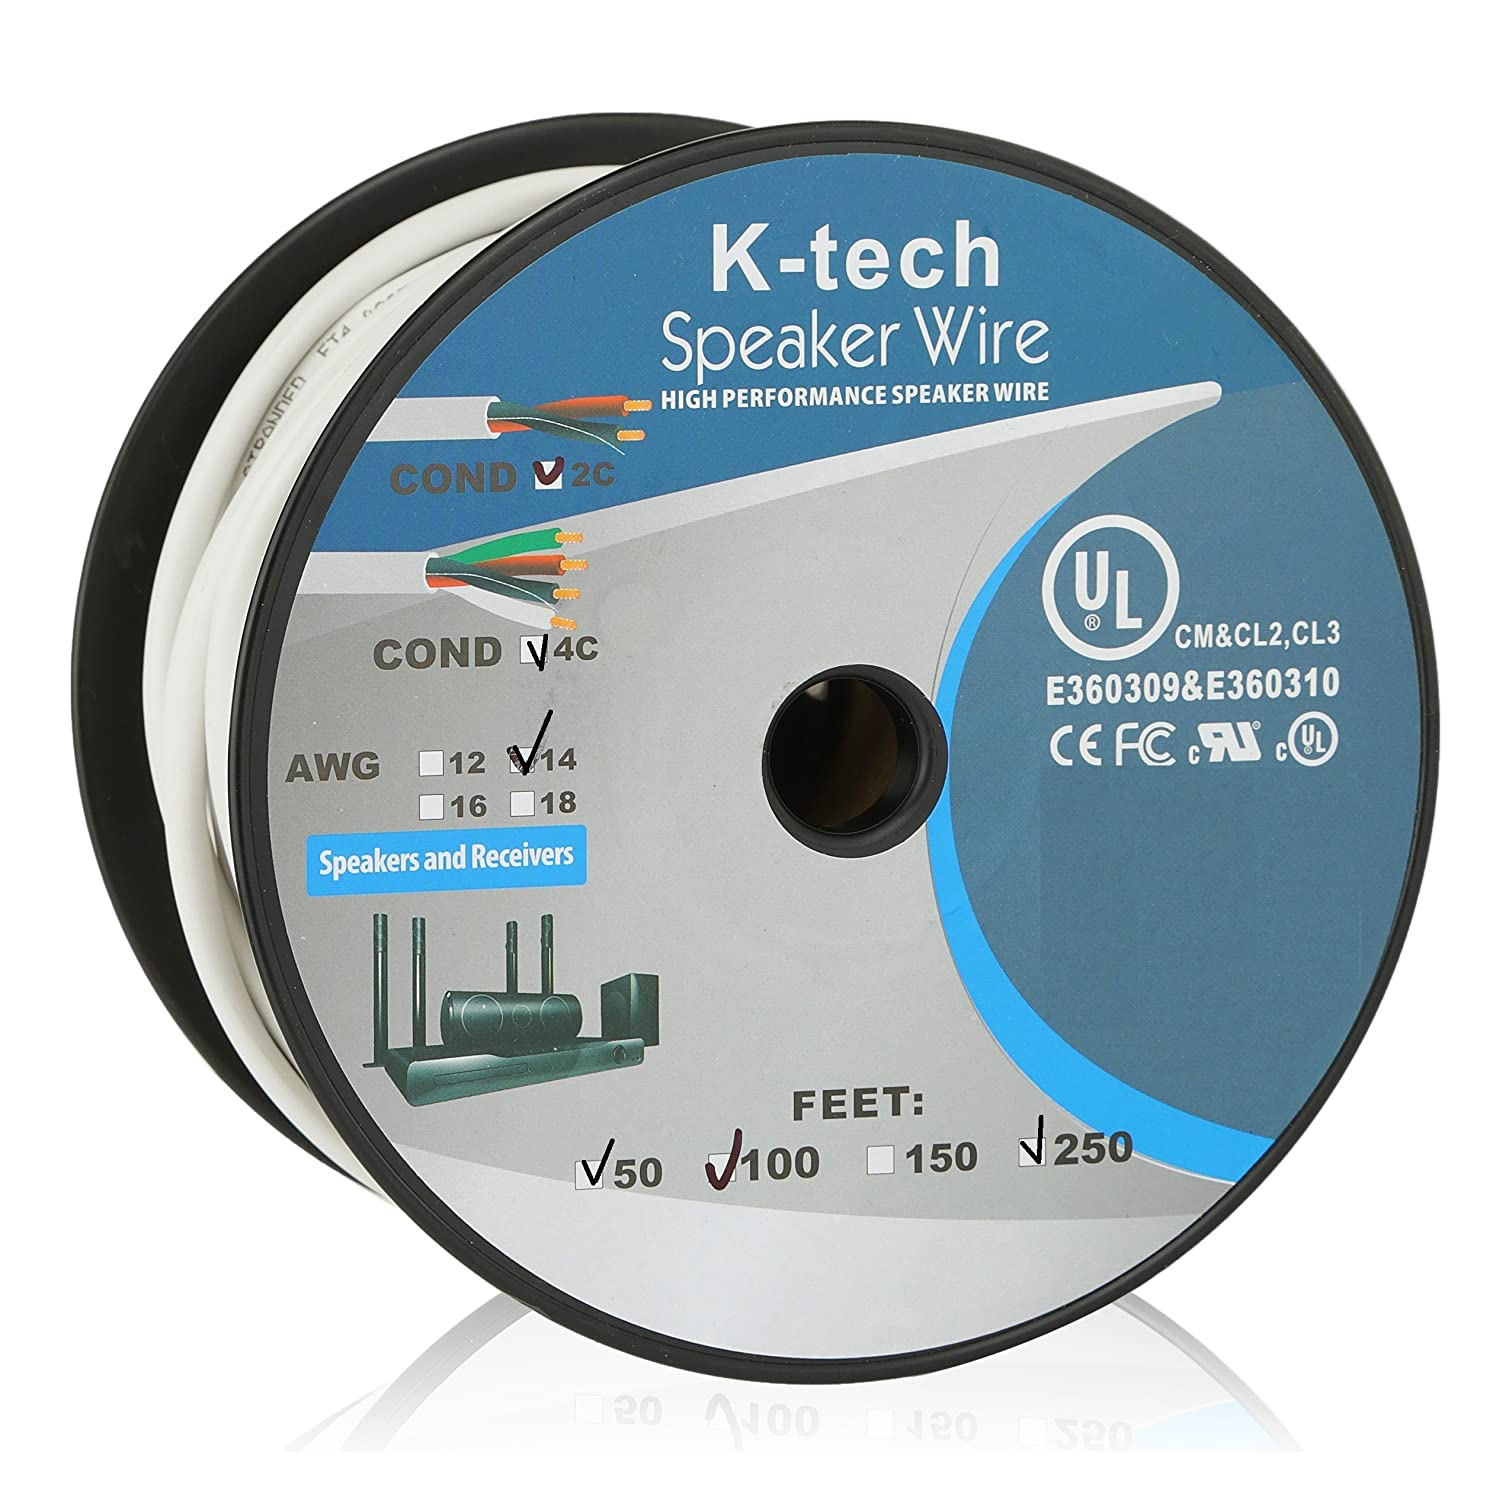 Amazon.com: K-tech In Wall Speaker Wire 14AWG UL CL2 Rated 2 ...